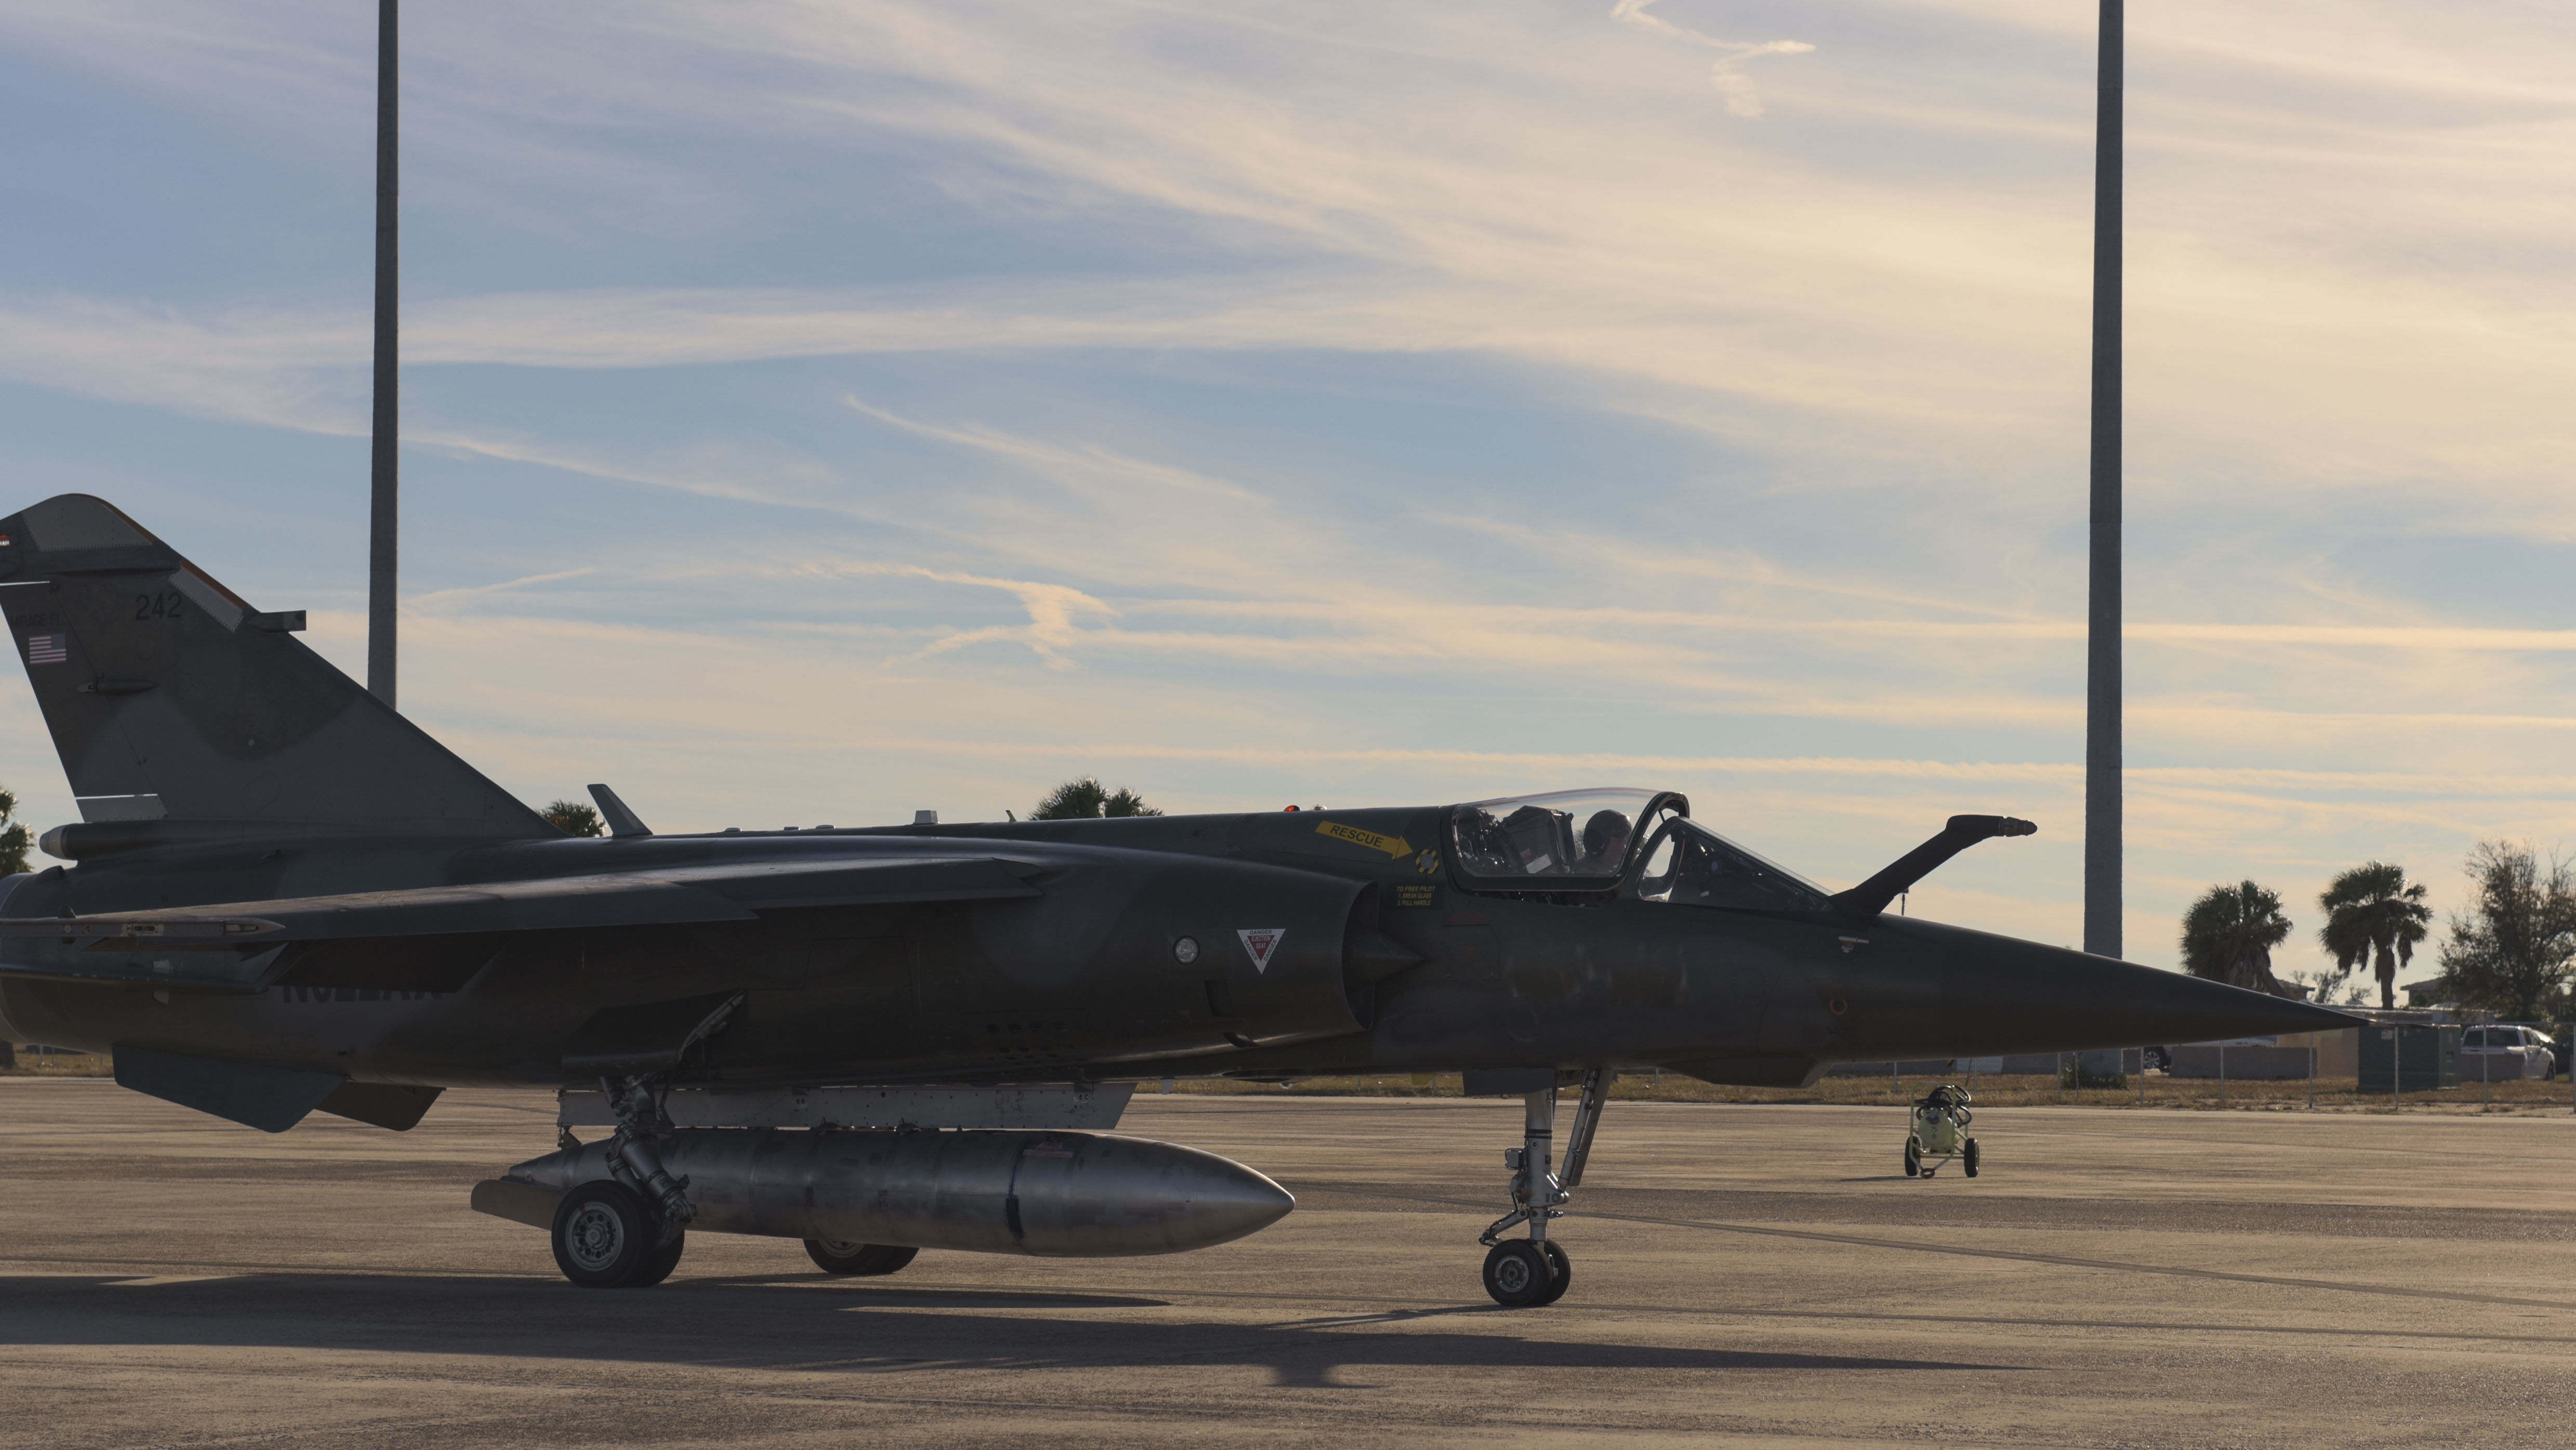 Airborne Tactical Advantage Company Mirage F-1Cs to Play Aggressor Role at Tyndall AFB